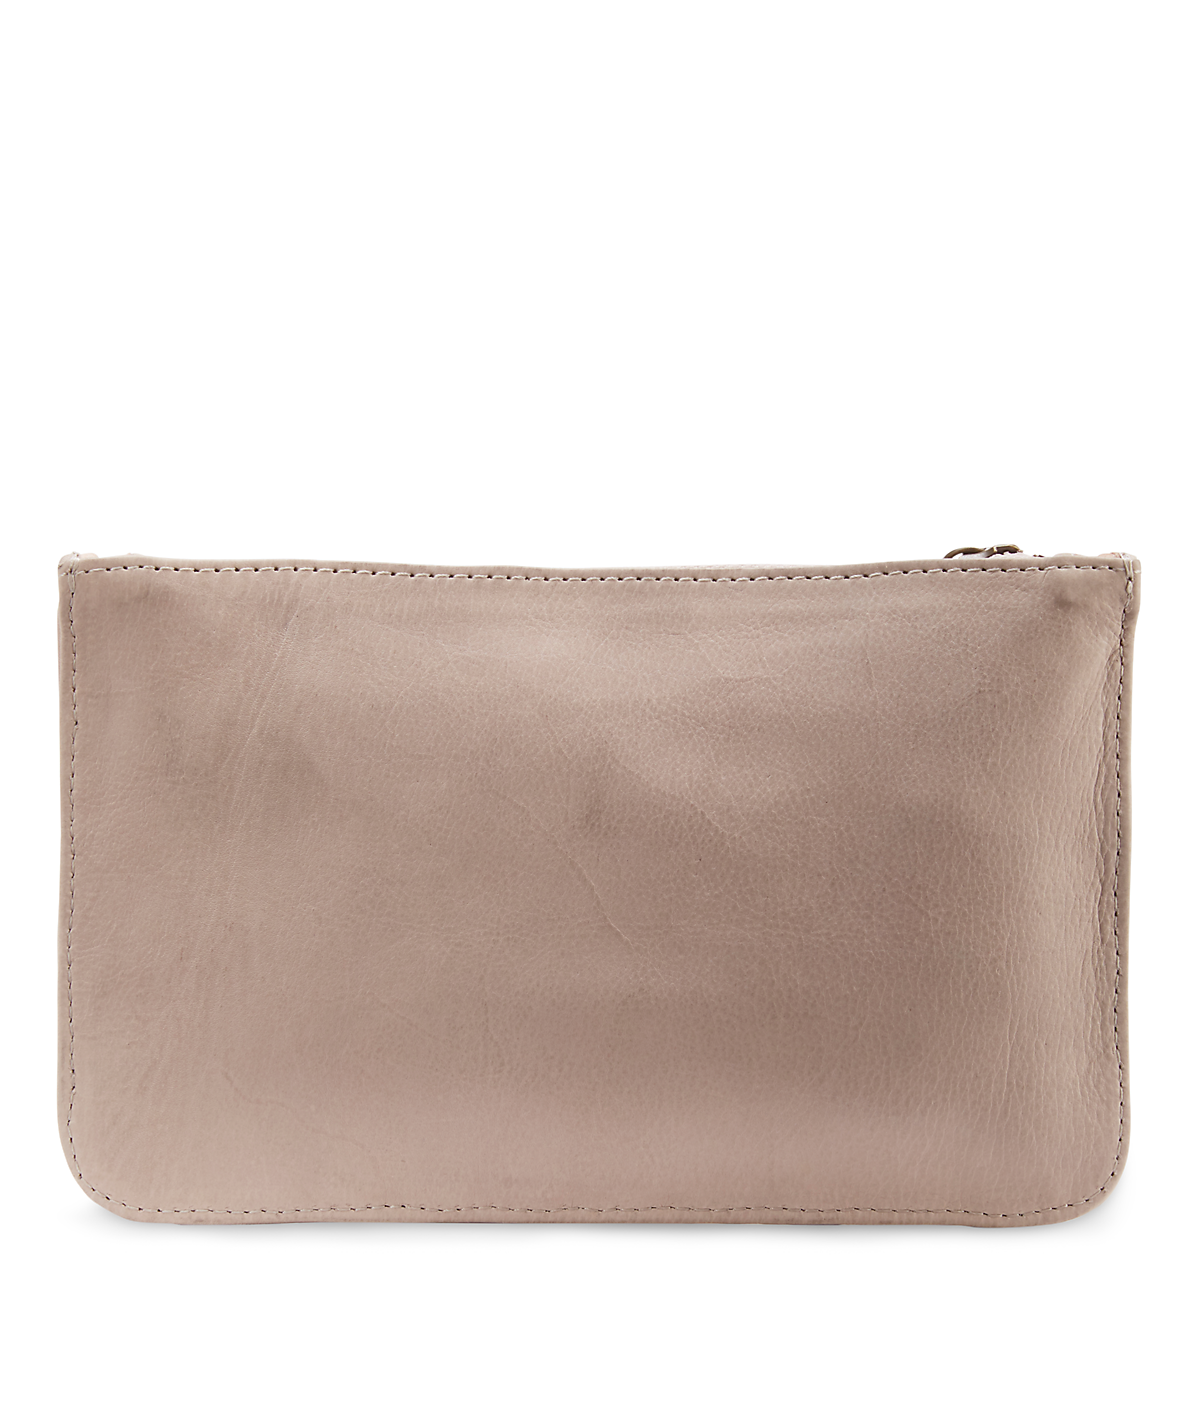 Kiwi B make-up bag from liebeskind